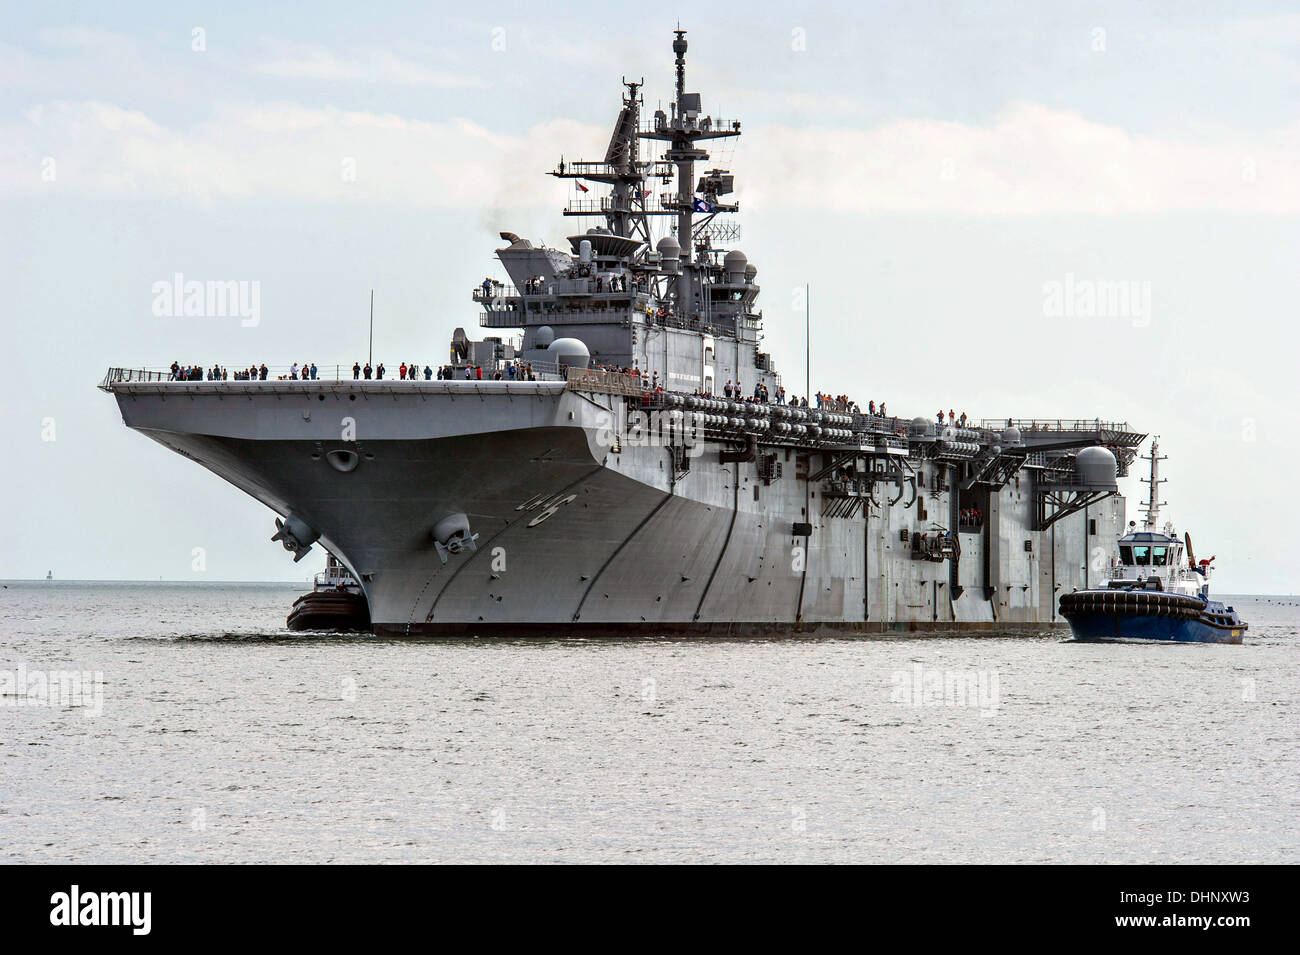 The US Navy USS America returns to Huntington Ingalls Shipyard after completing Builder's Sea Trials prior to commissioning November 9, 2013 in Pascagoula, MS. The America will be the first ship of its class, replacing the Tarawa class of amphibious assault ships. - Stock Image